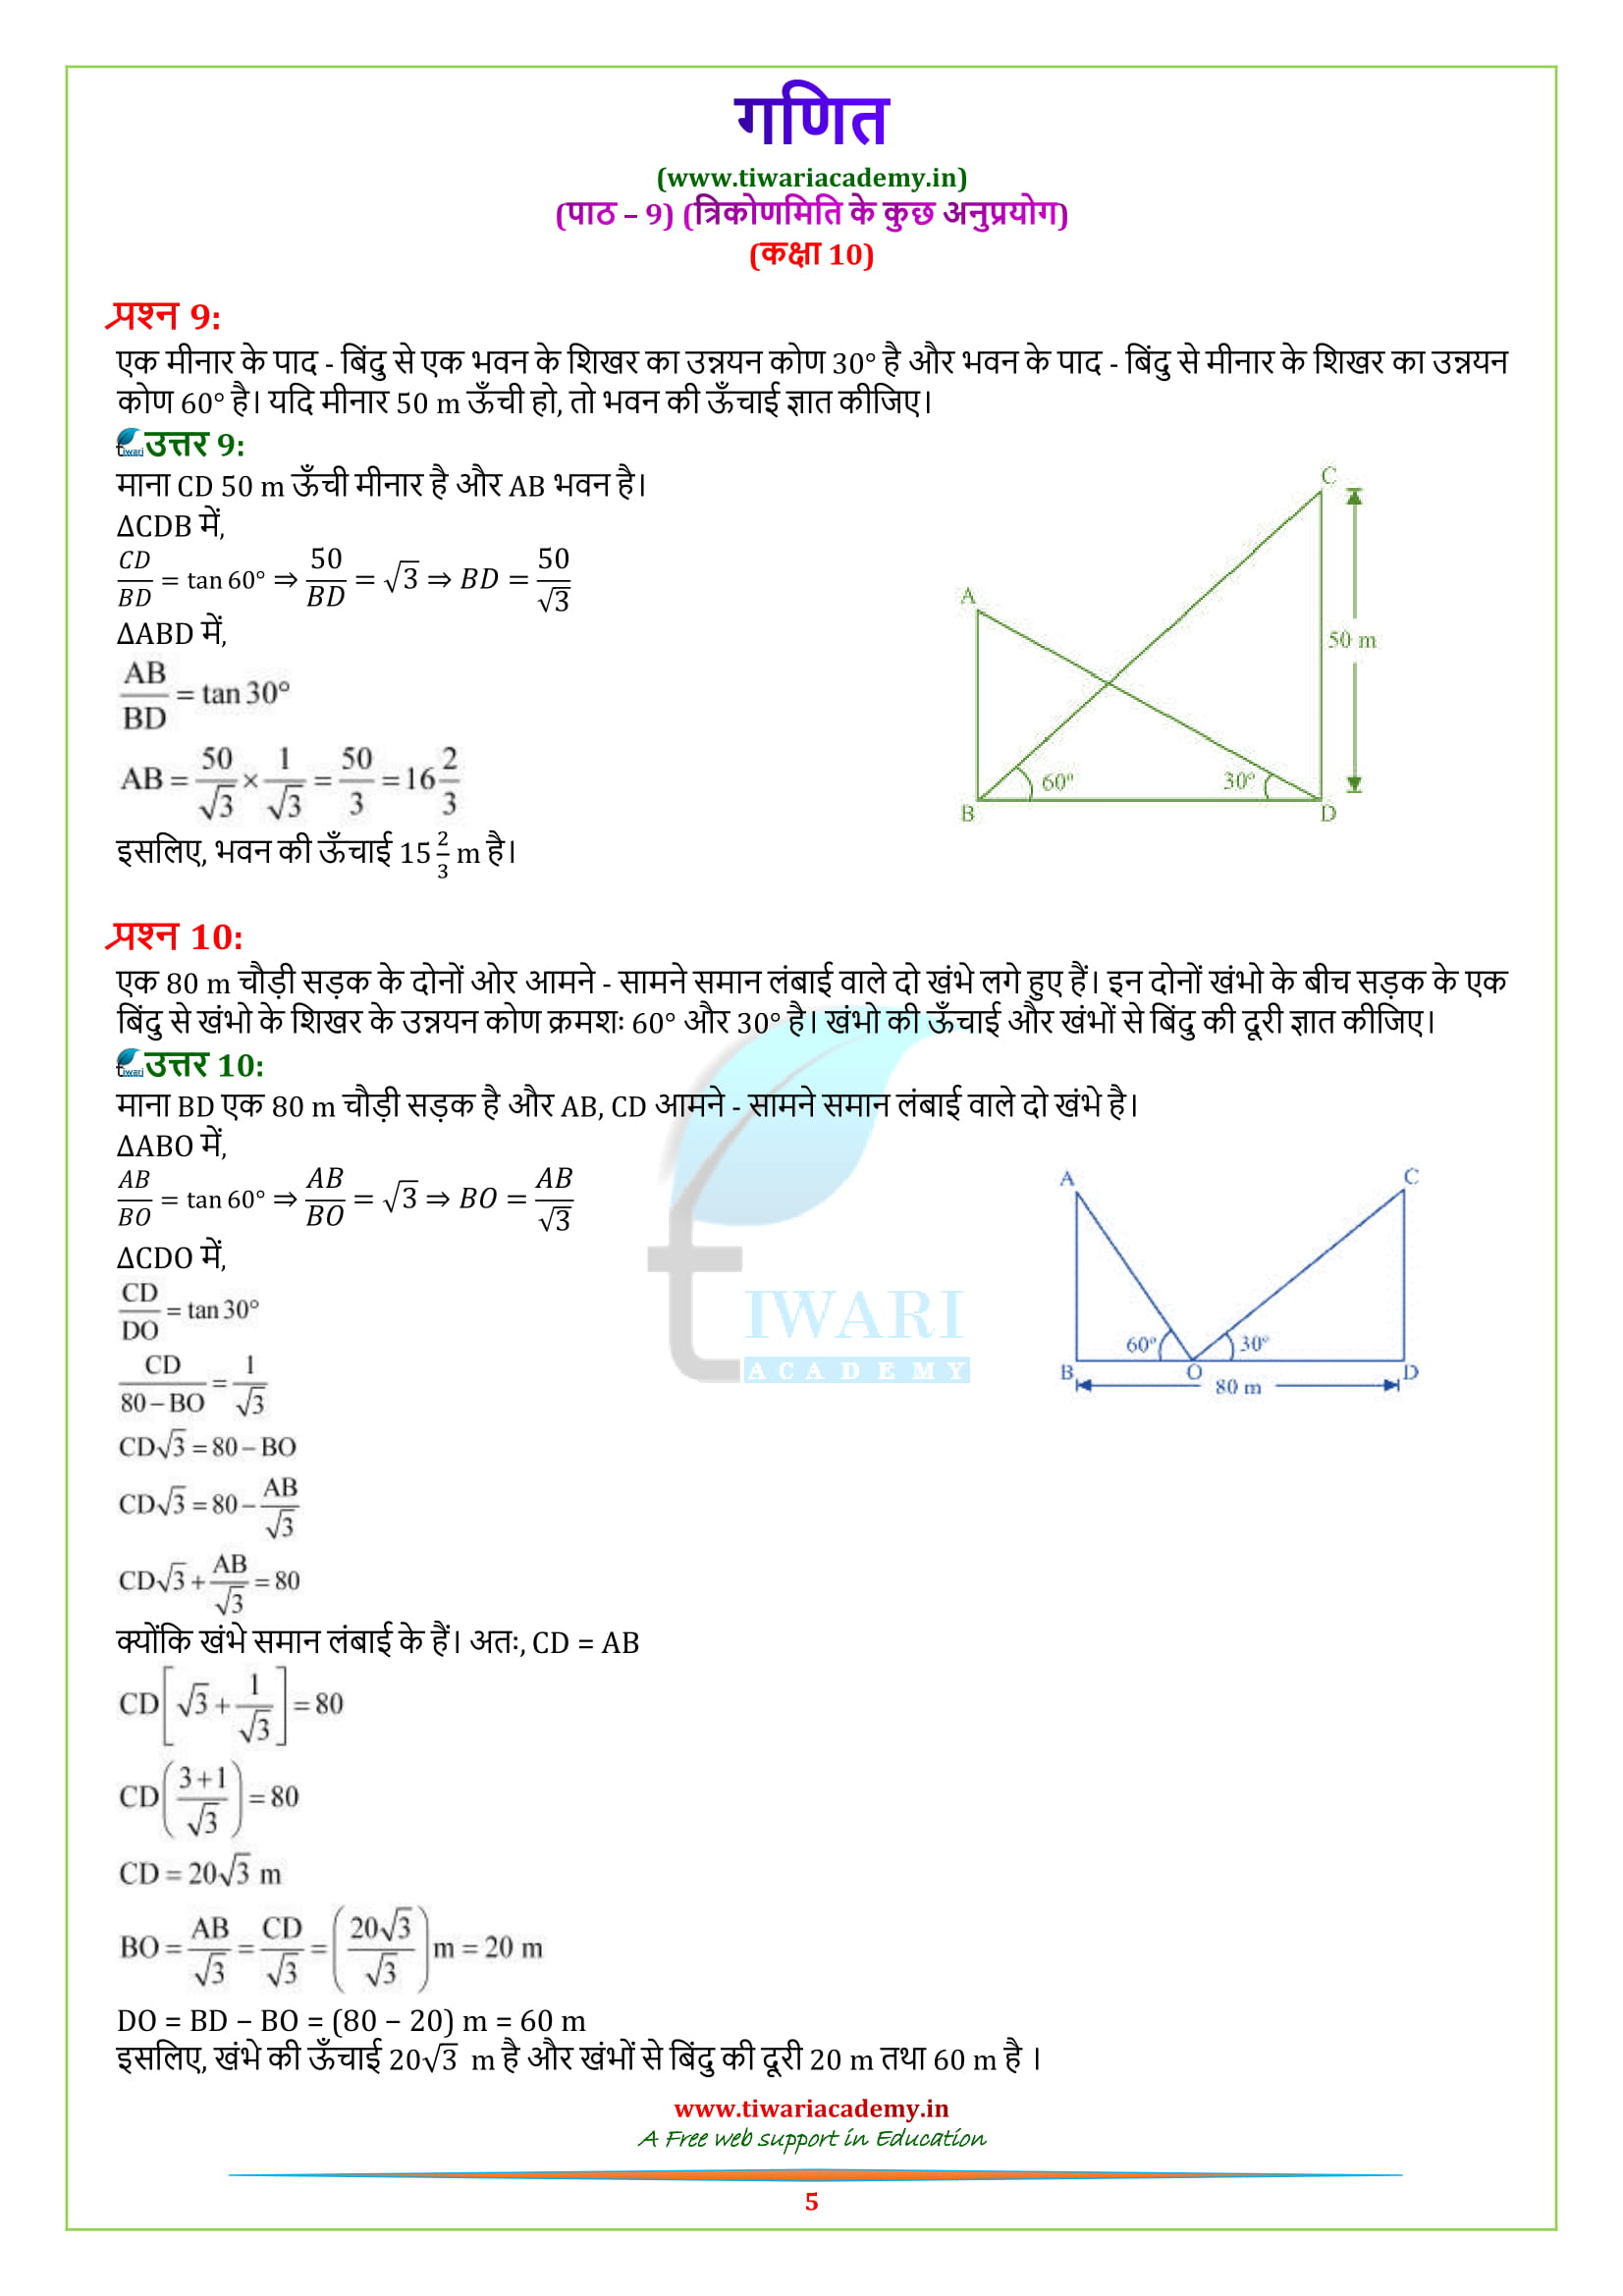 Class 10 Maths Exercise 9.1 question 9 and 10 solutions in hindi